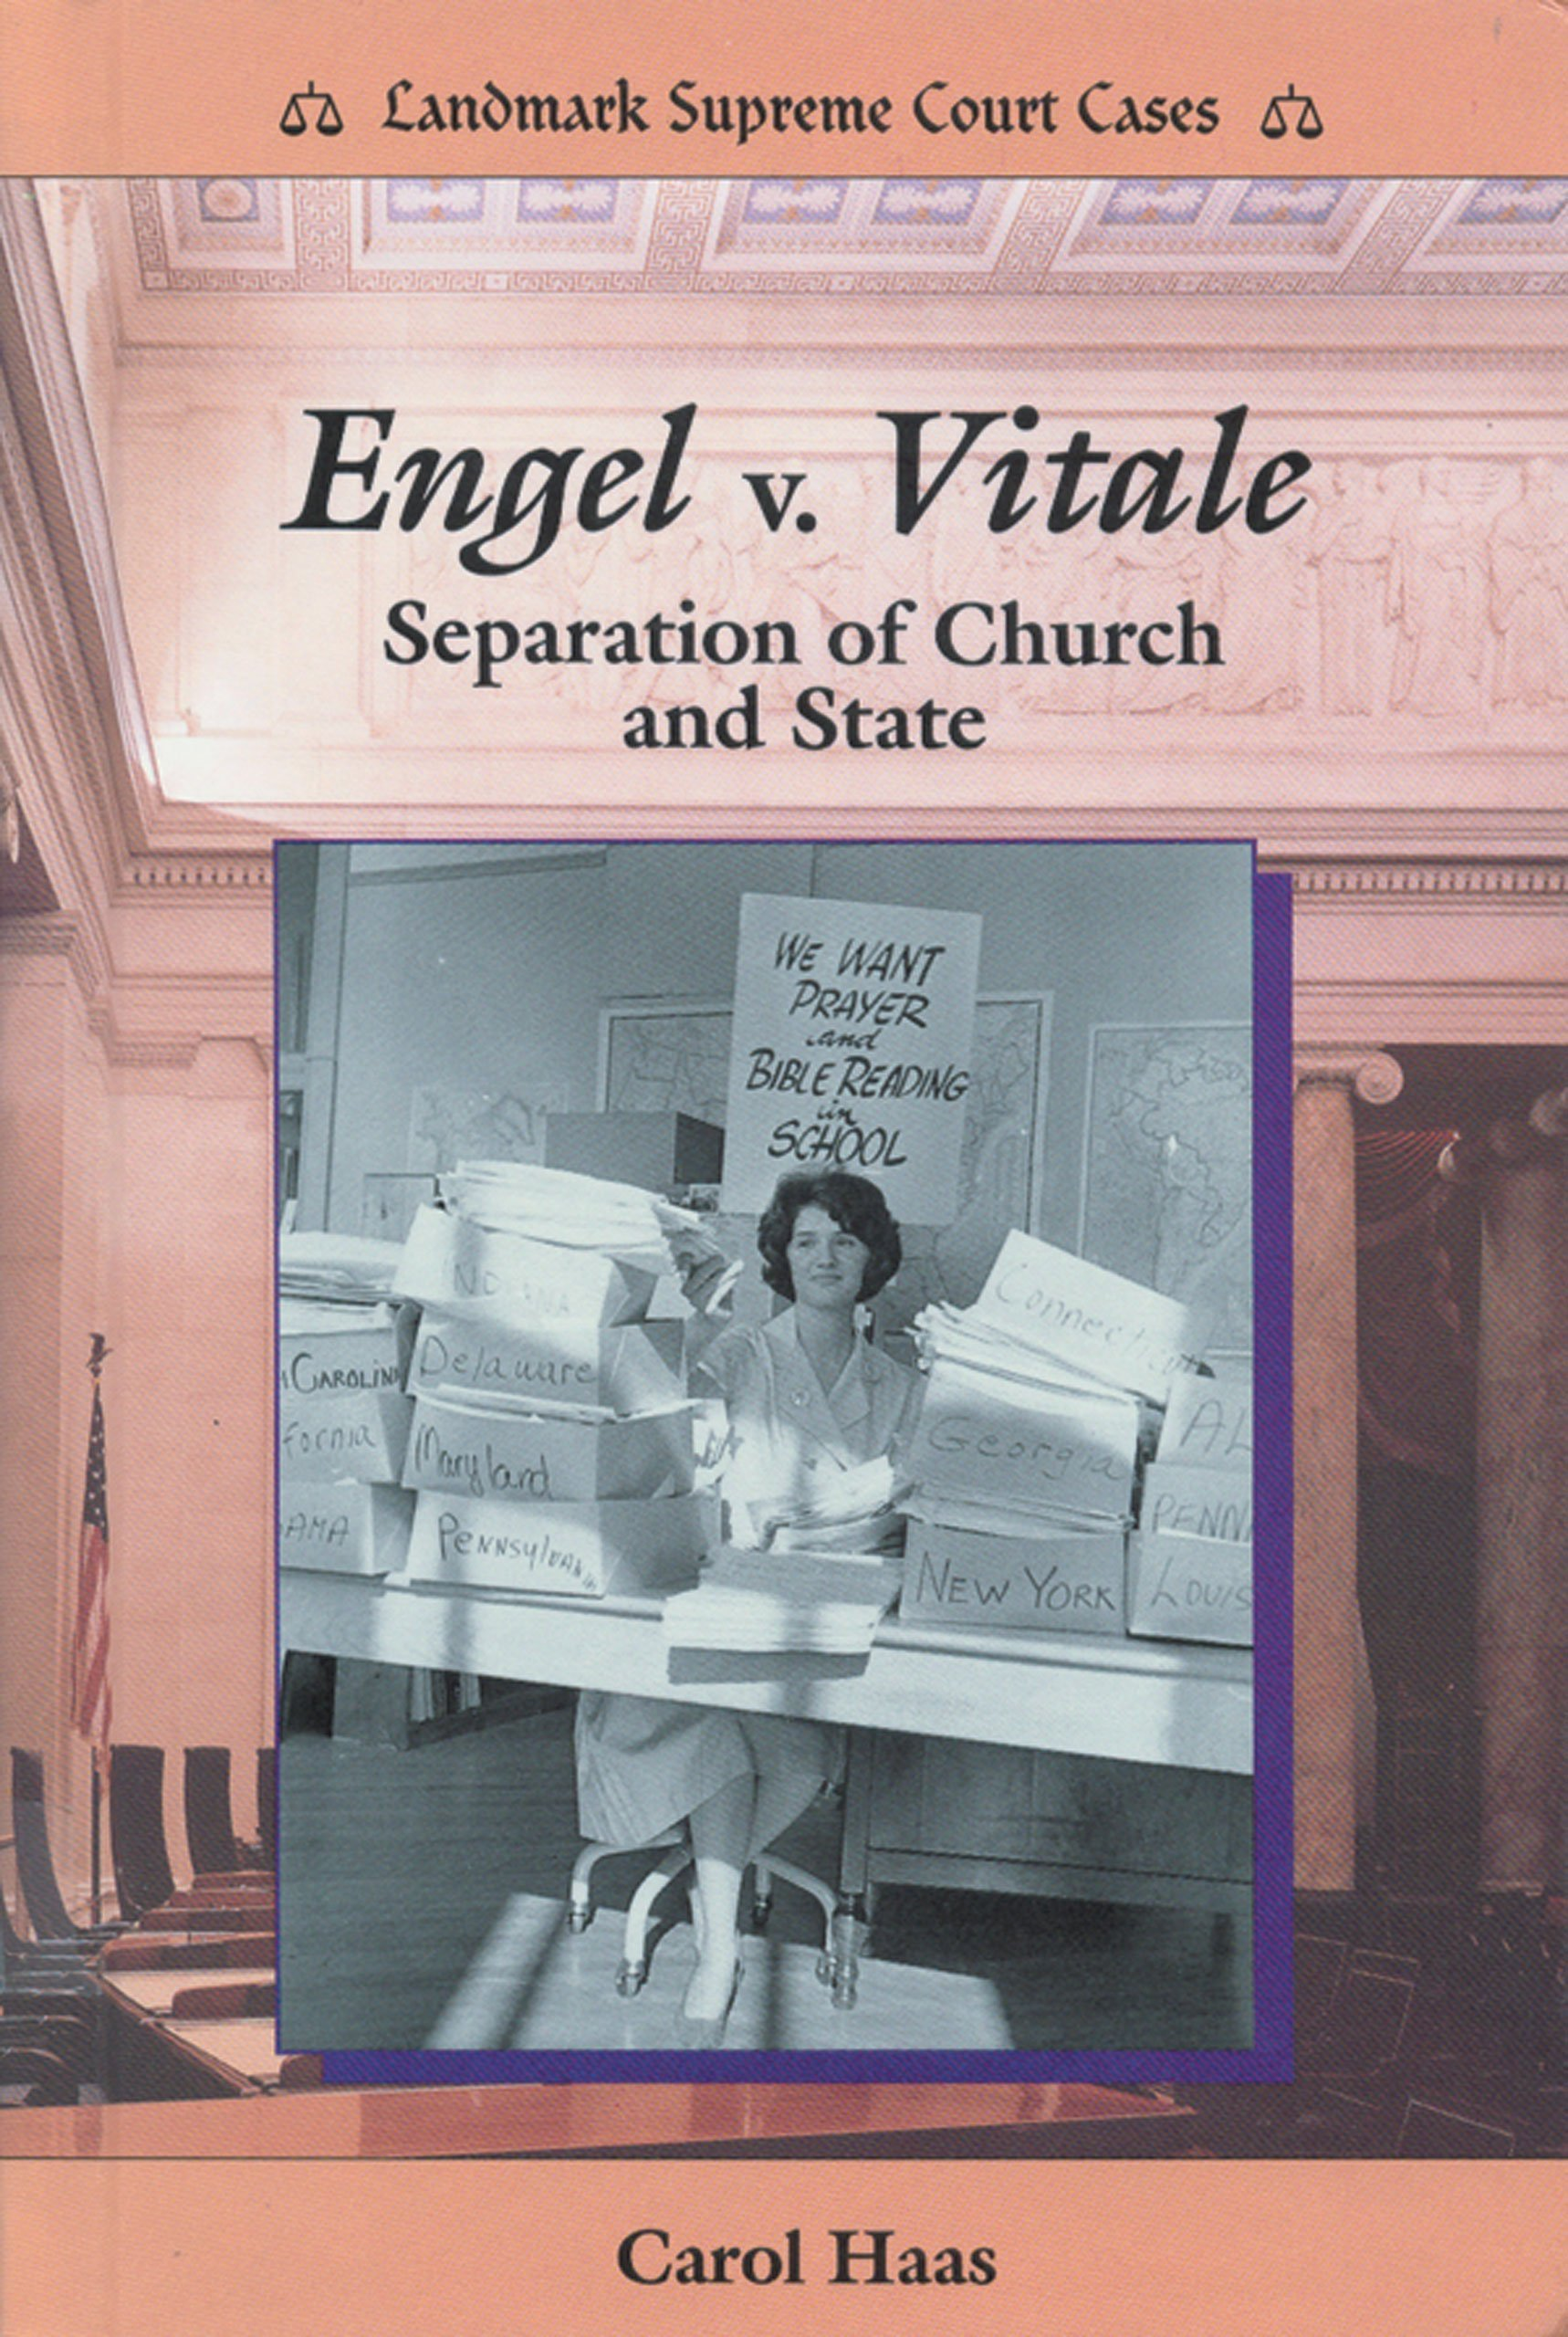 what is the significance of engel v vitale